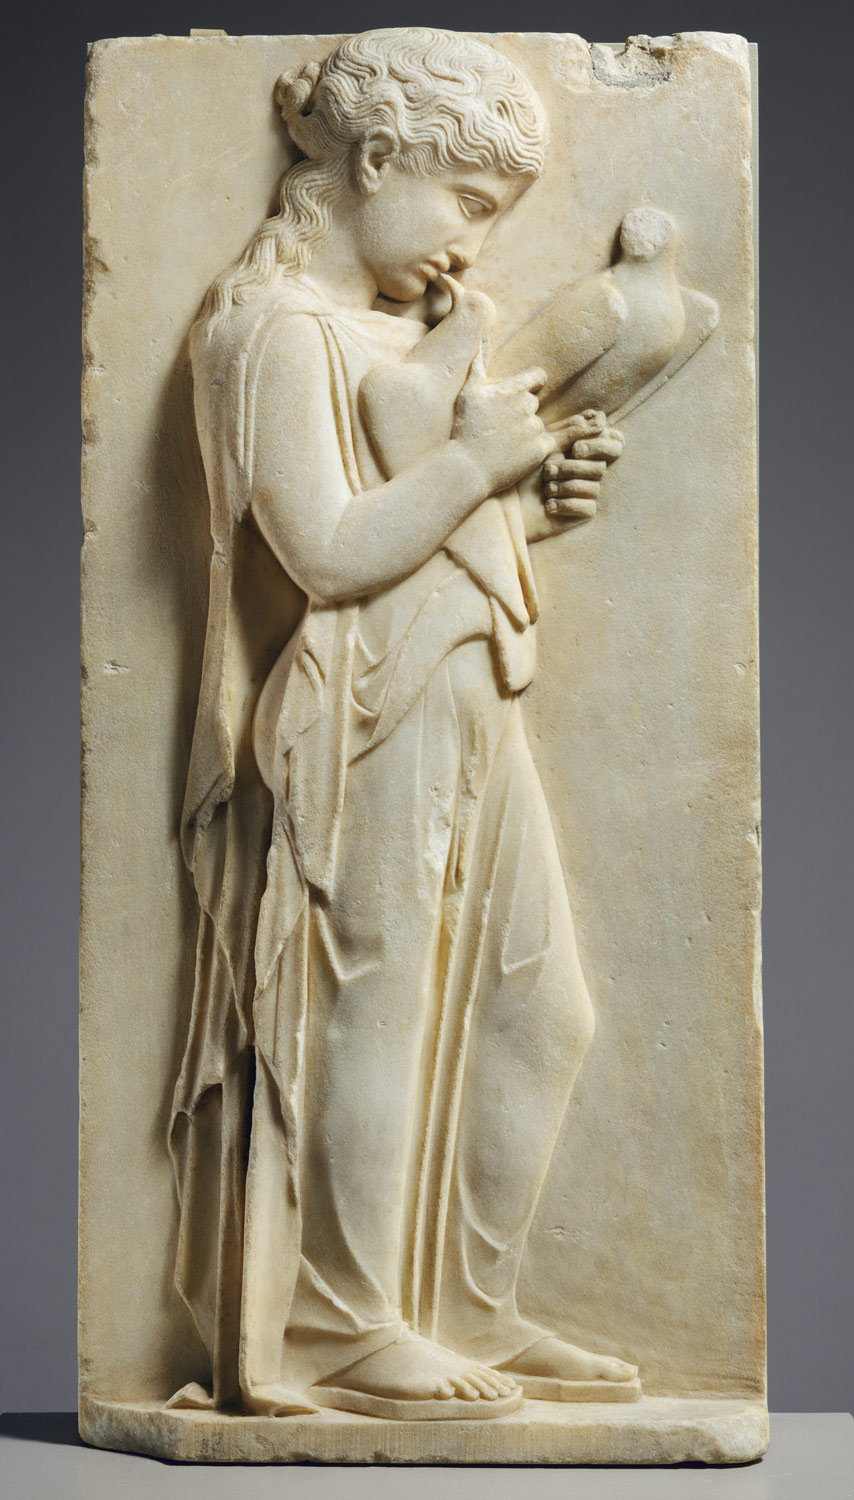 Grave stele of a little girl